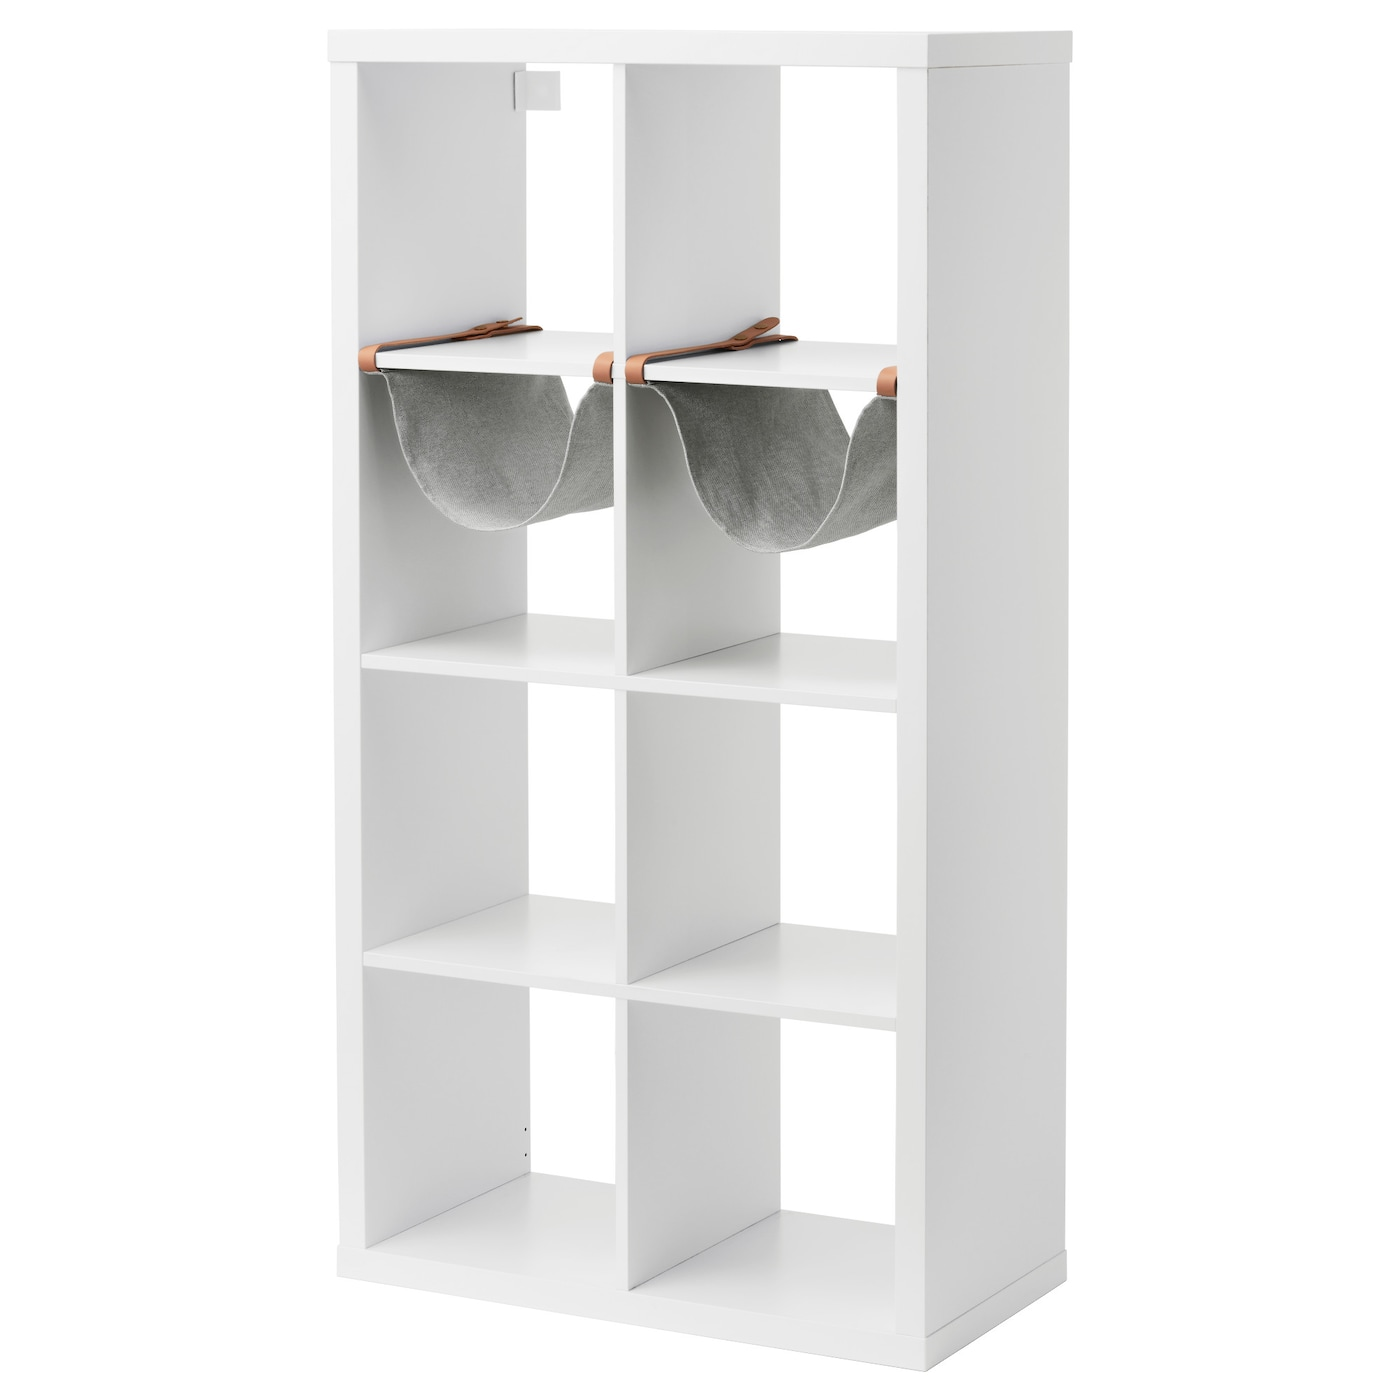 IKEA KALLAX shelving unit with 2 inserts